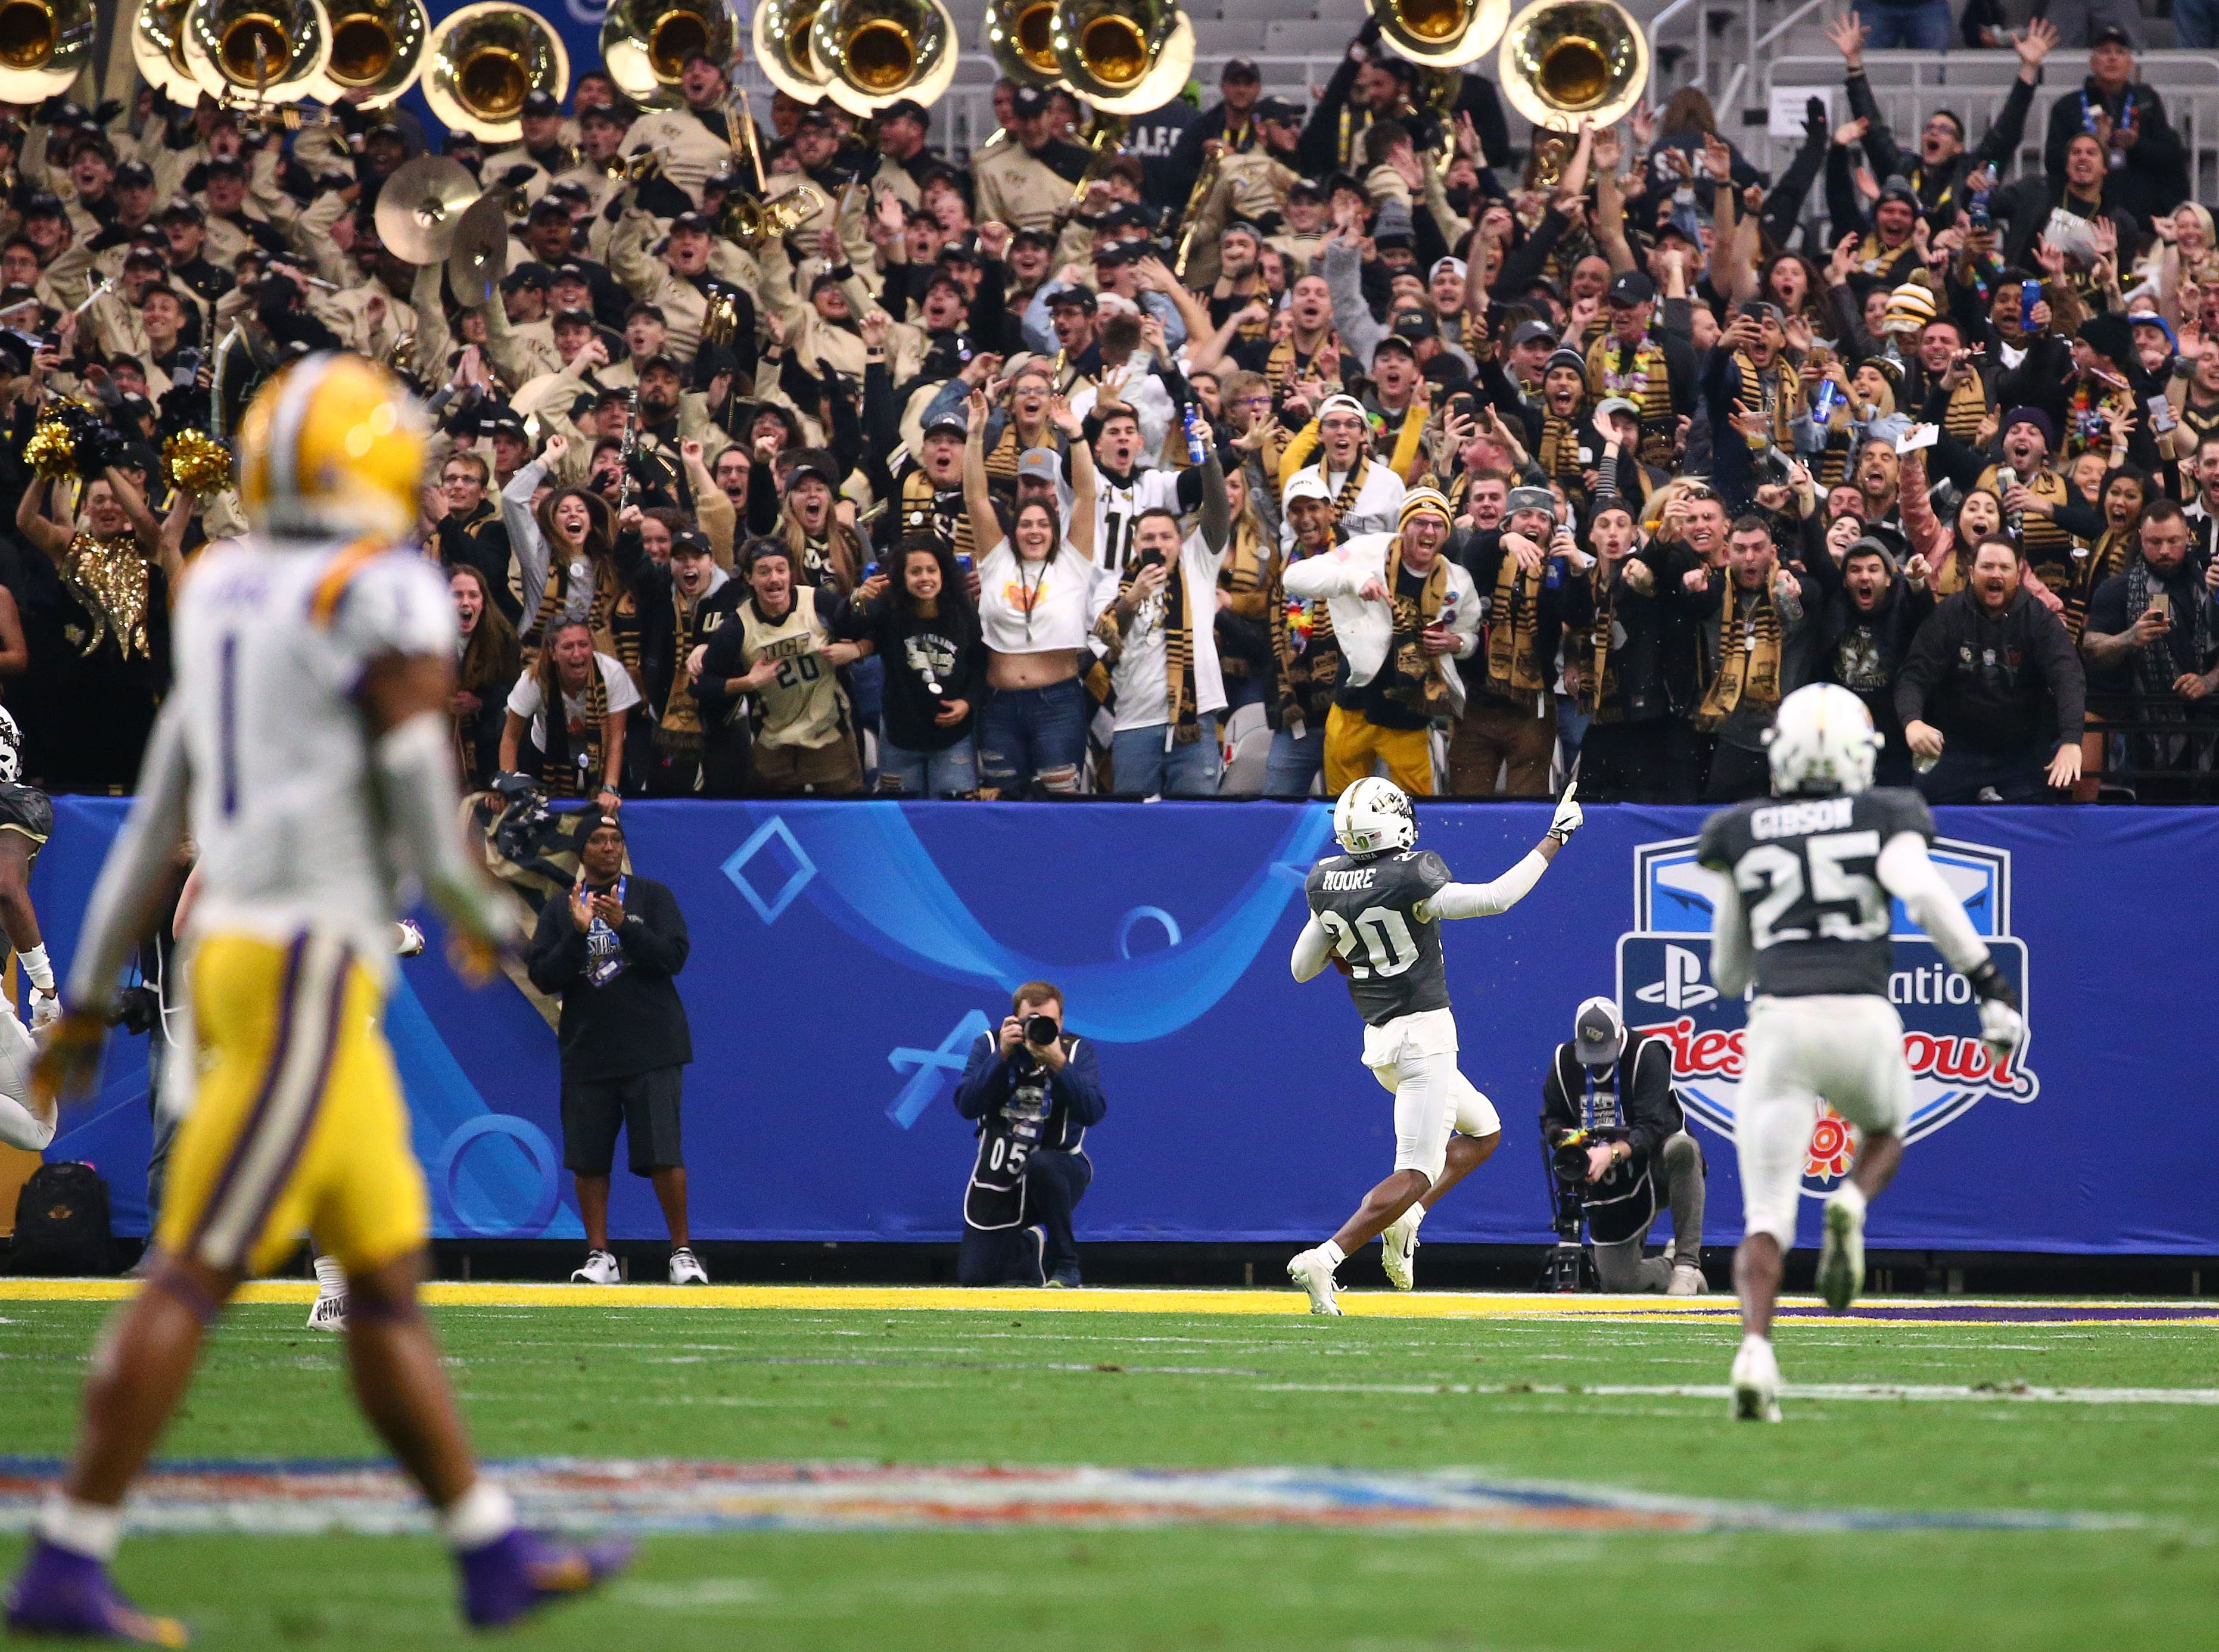 UCF Knights defensive back Brandon Moore scores a touchdown on a interception against the LSU Tigers in the first half at the Fiesta Bowl on Jan. 1 at State Farm Stadium.